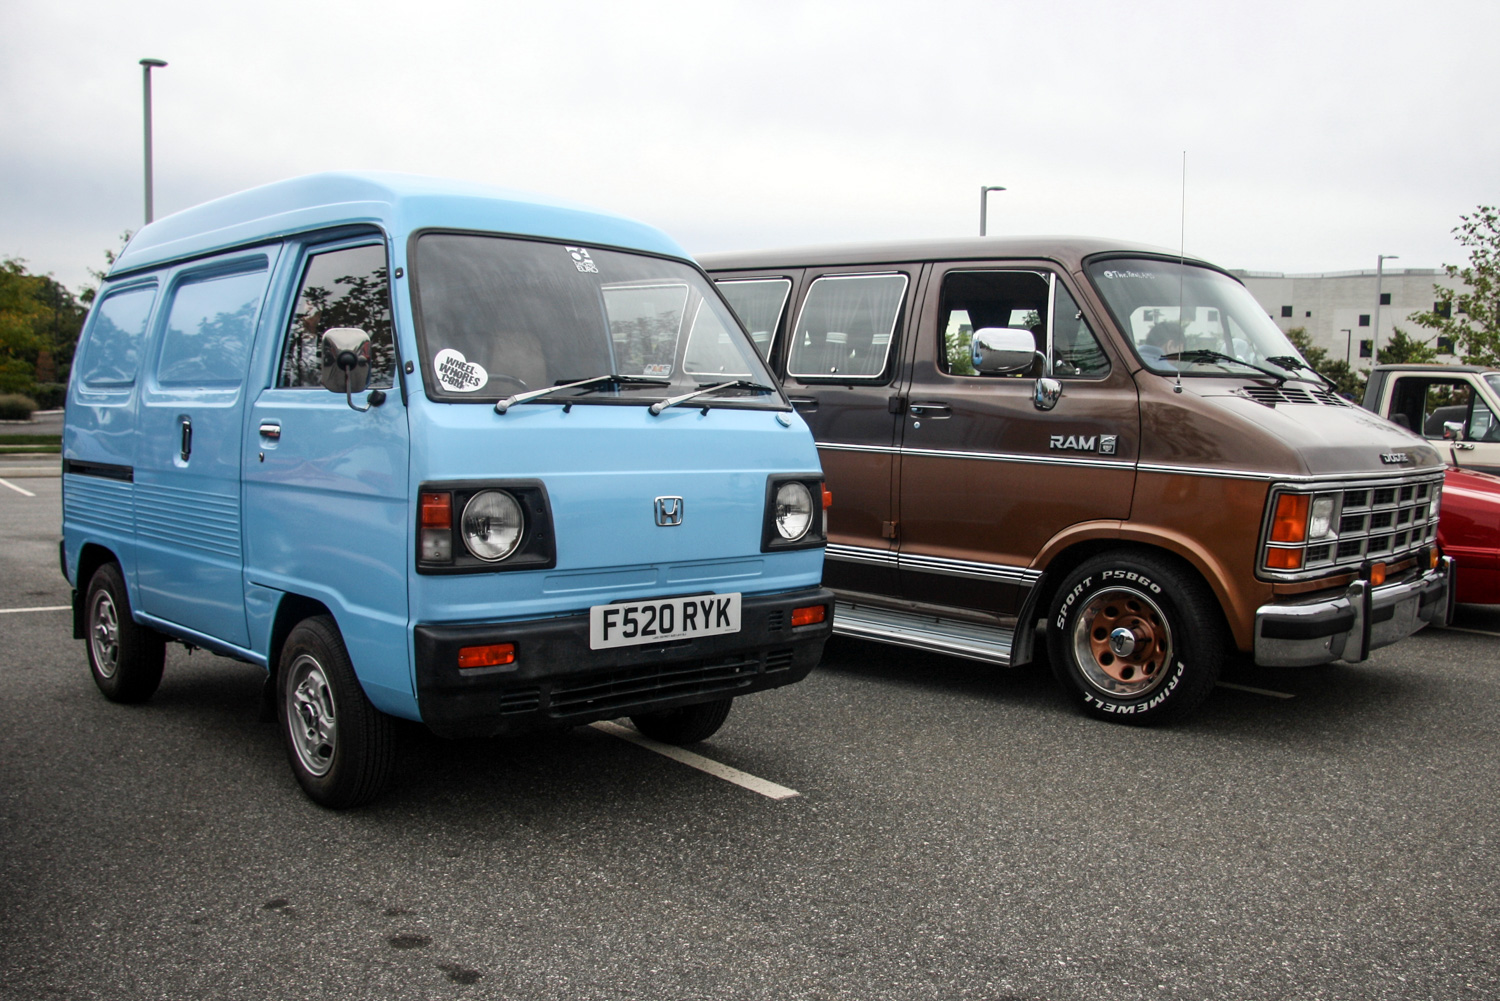 A Kei van and a Dodge van, '80s-style.